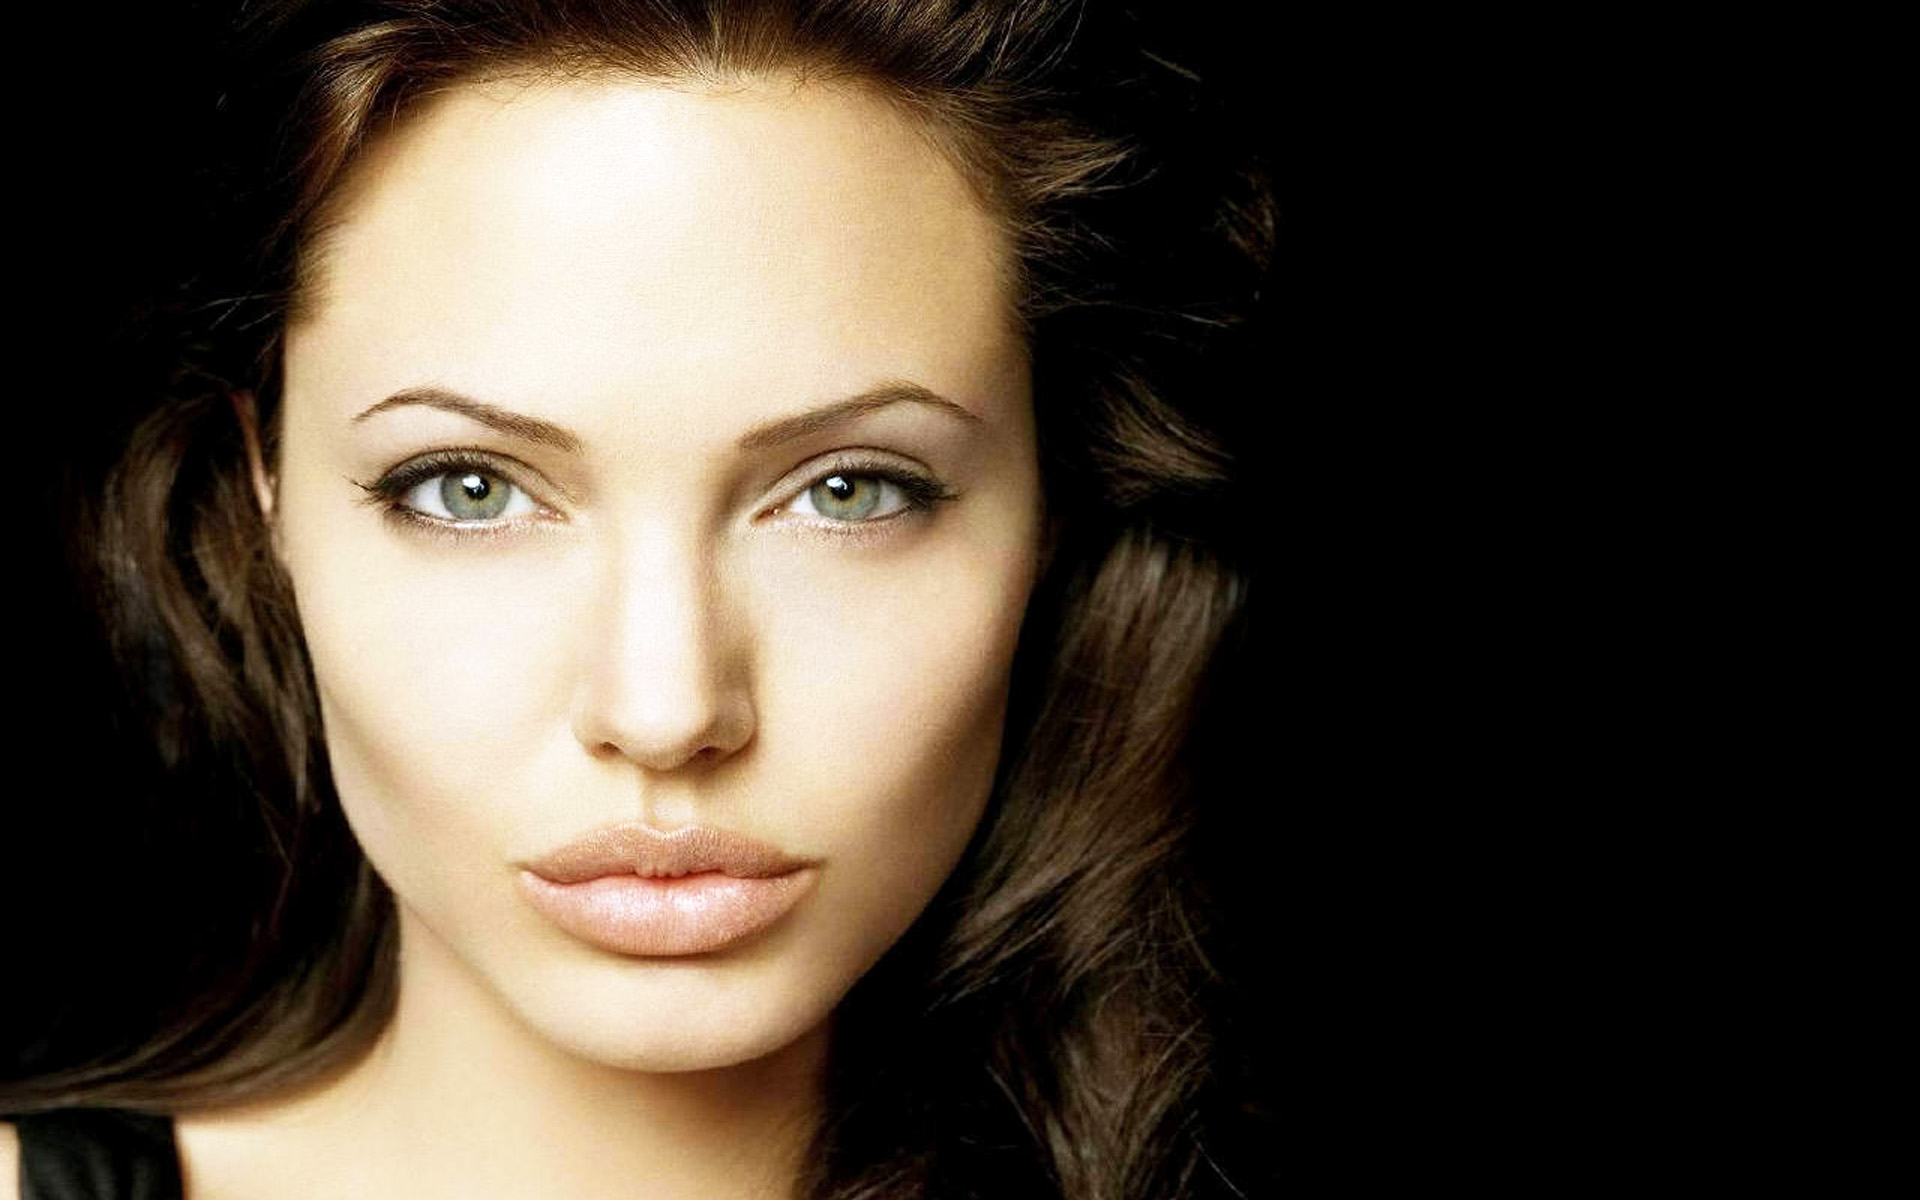 Angelina Jolie Hd Wallpapers: New Latest Wallpapers Of Angelina Jolie 2012 High Quality